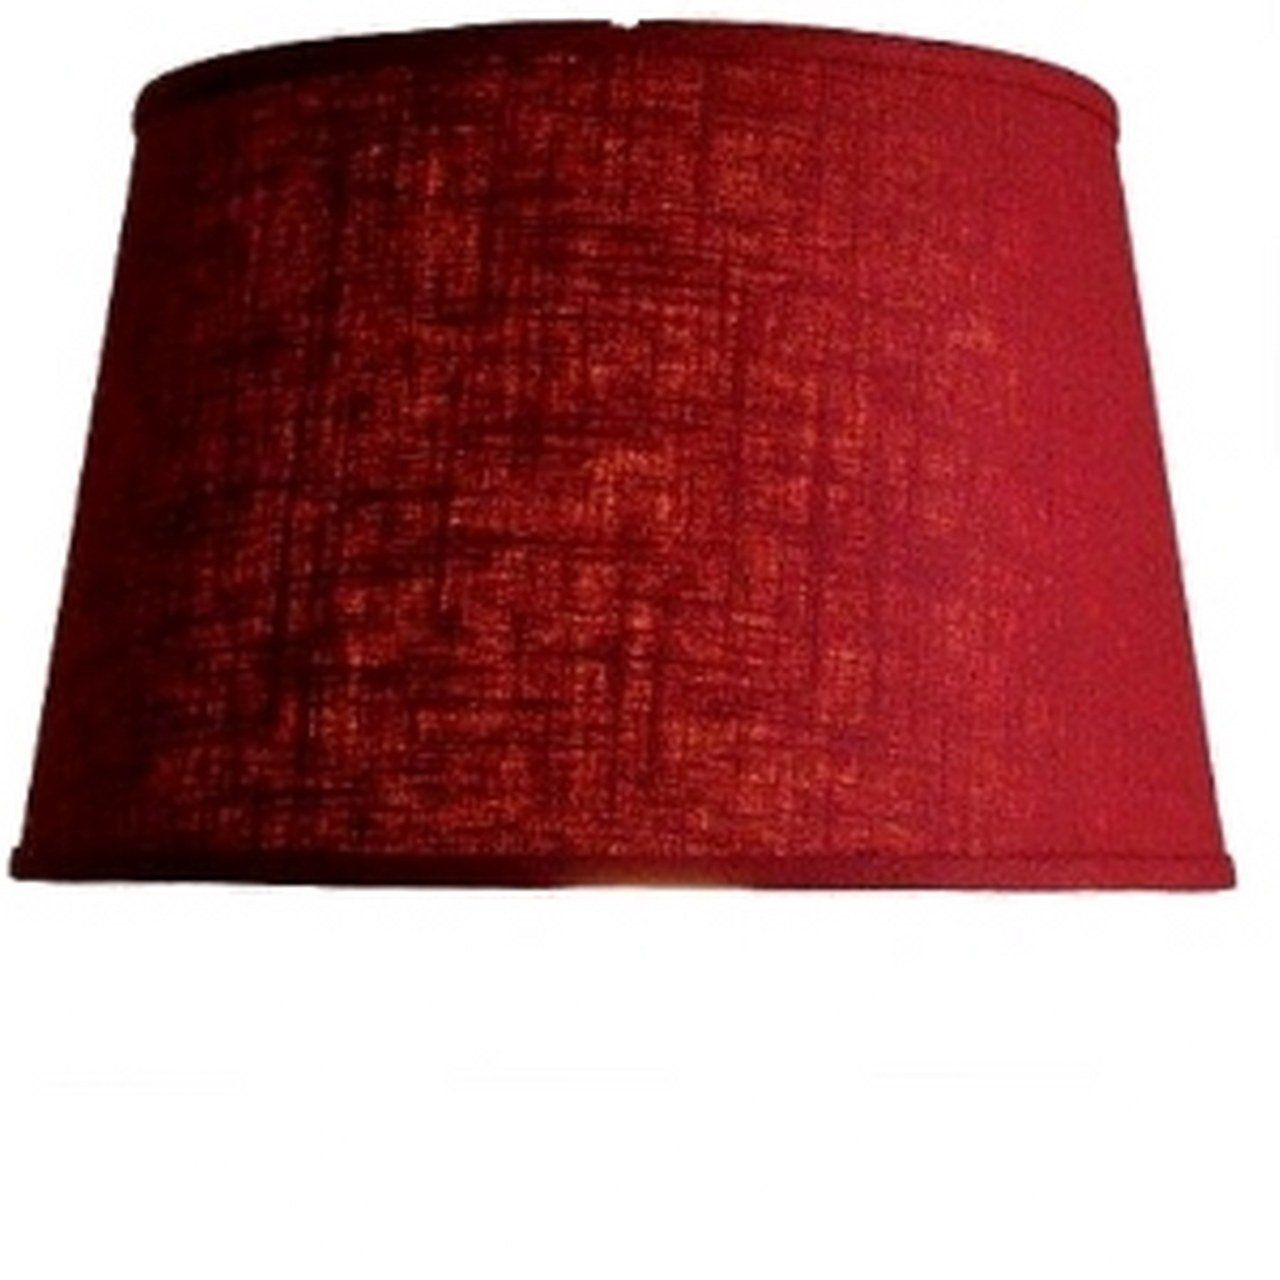 Upgradelights Red Linen Fabric Floor or Table Lamp Drum Lampshade